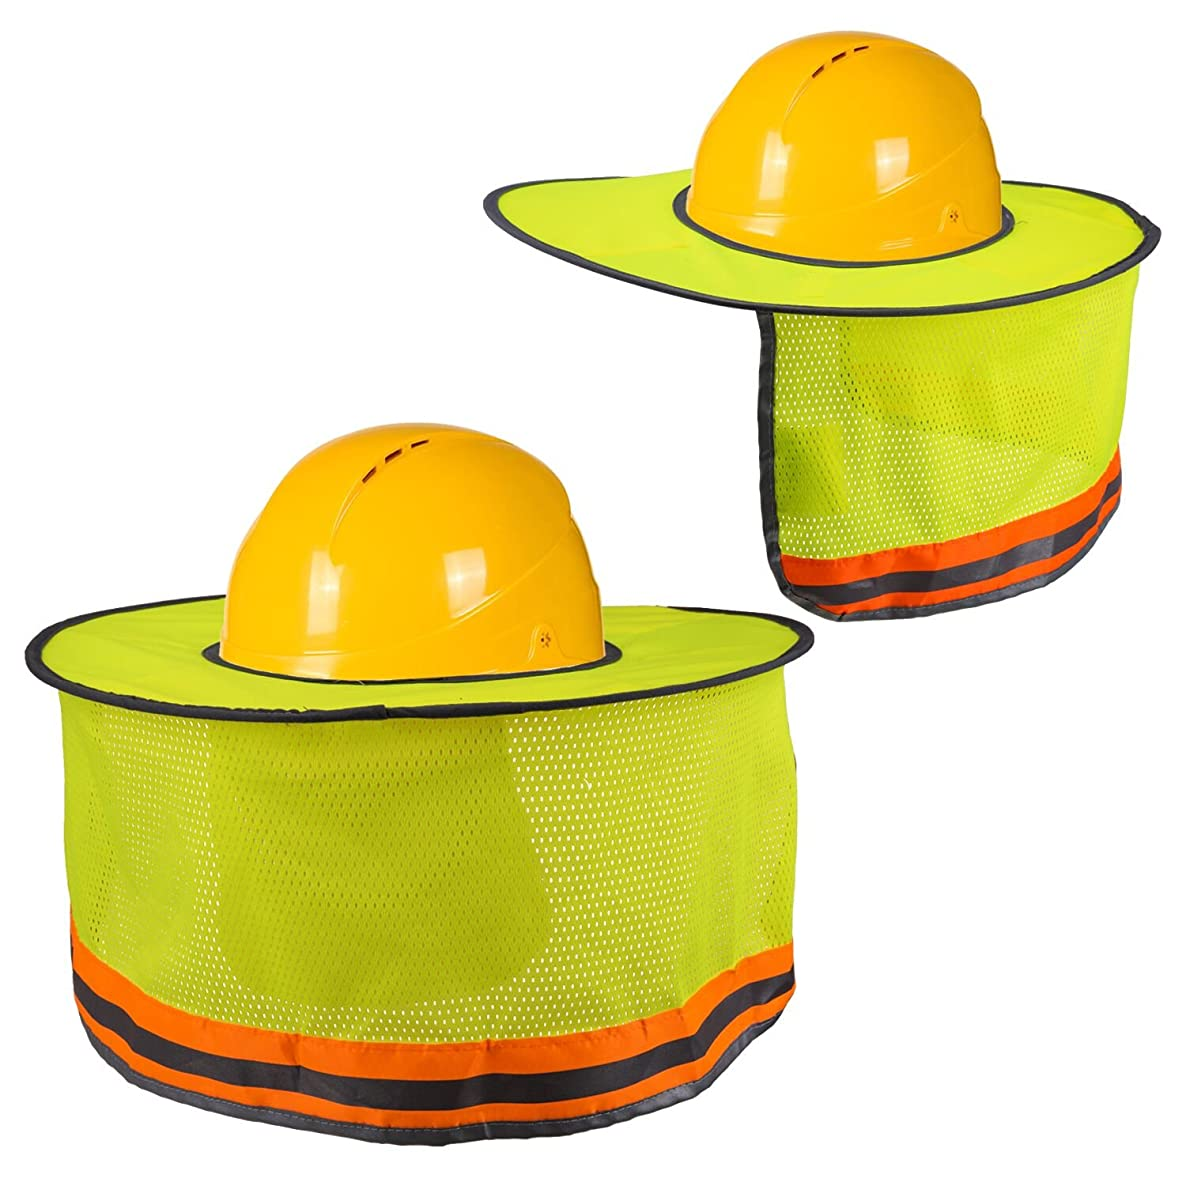 LUTER Hard Hat Sun Shade Neck Shield Sun Protection With Reflective Strip and High Visable Mesh Design For Hardhats/Helmet Construction(2Pcs)